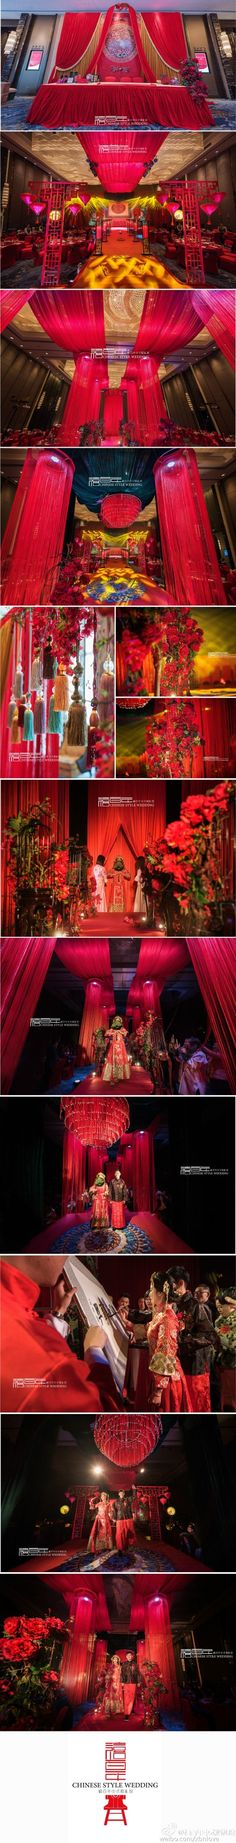 48 best wedding peranakan images on pinterest asia chinese and chinese wedding decororiental junglespirit Image collections